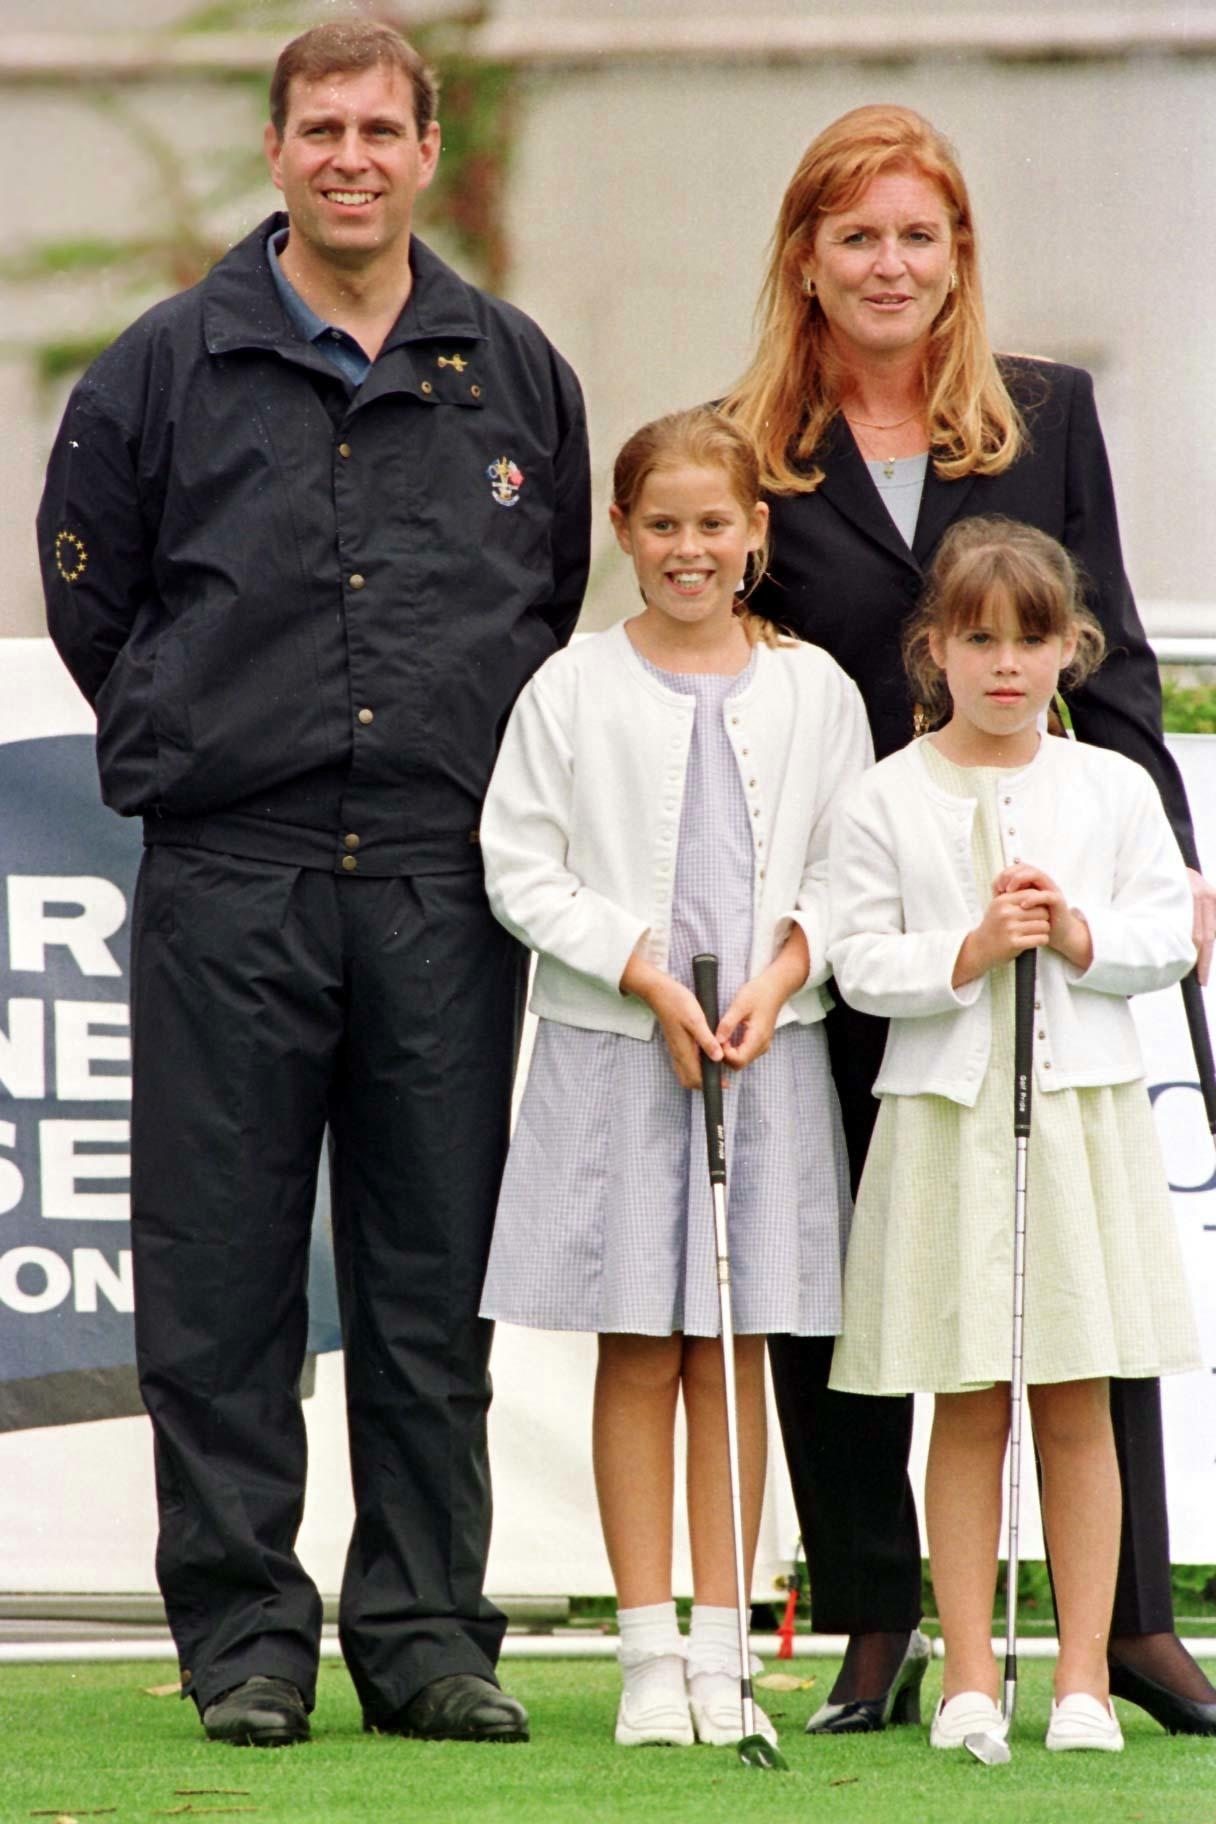 The Duke and Duchess of  York with their daughters Princesses Beatrice (left) and Eugenie, at Wentworth Golf Club, Surrey, for the Duchess of York's fifth charity golf tournament  in aid of the Motor Neurone Disease Association.